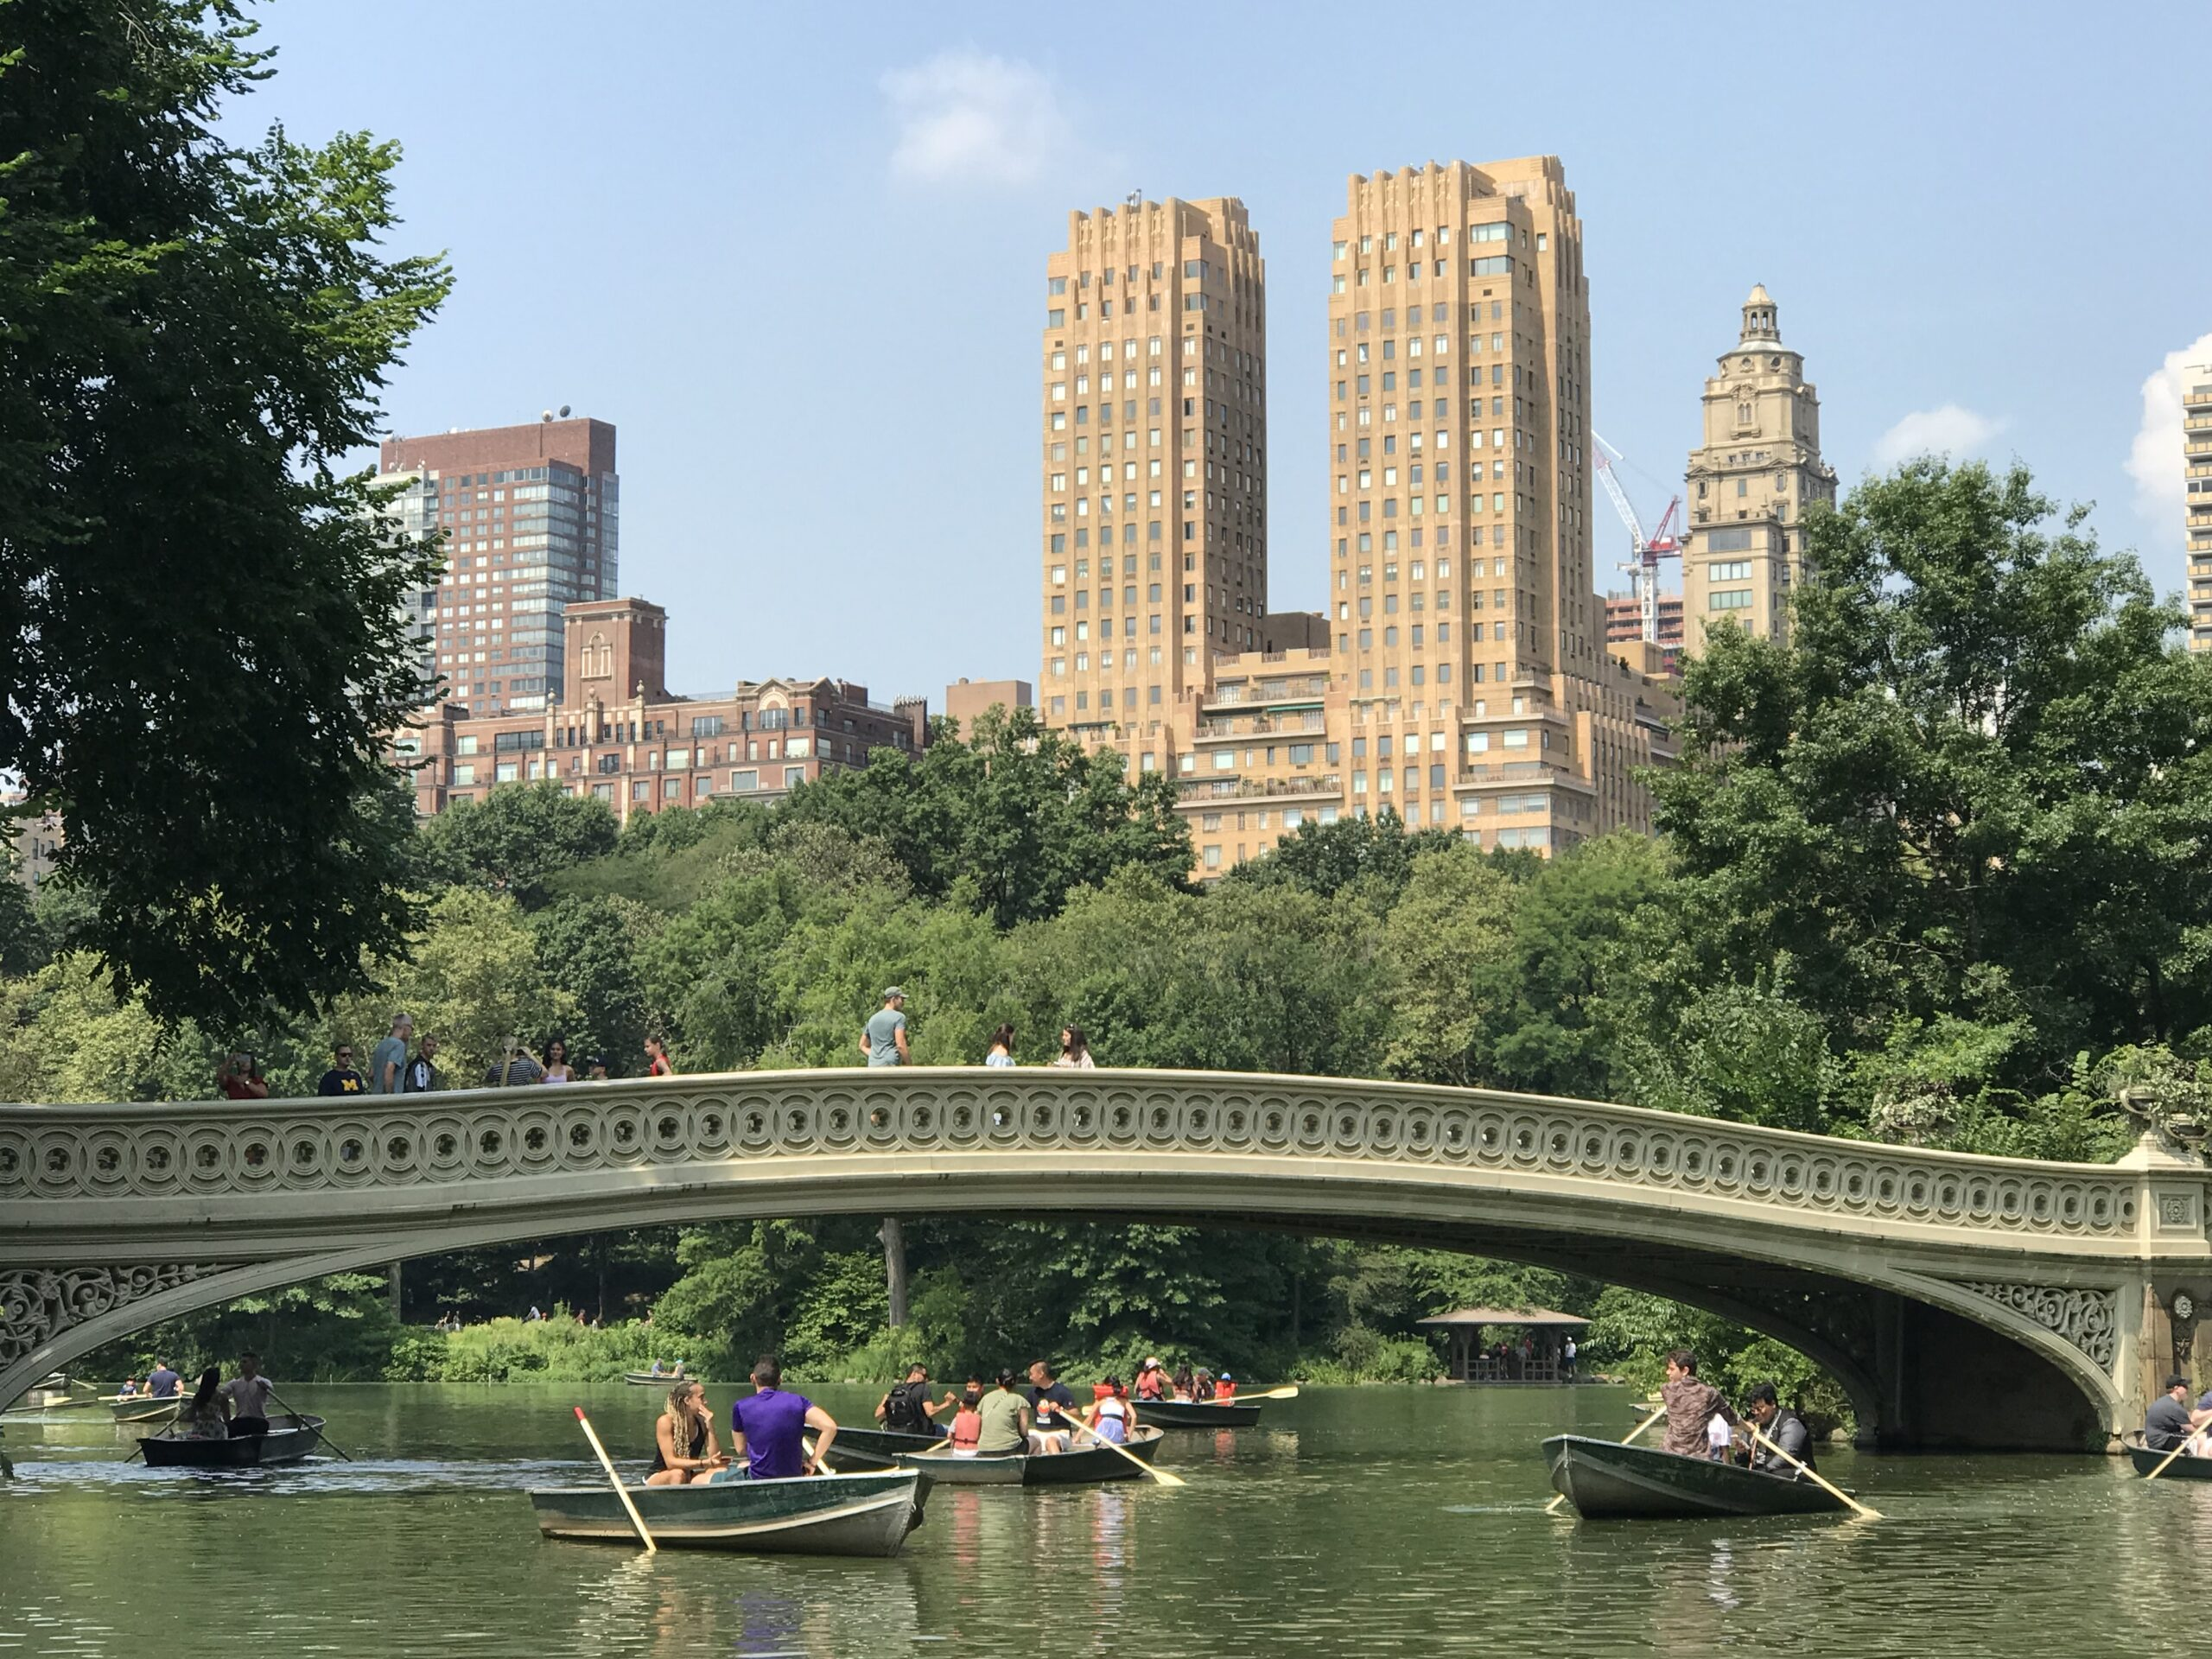 boats in Central Park NYC with tall buildings in the background